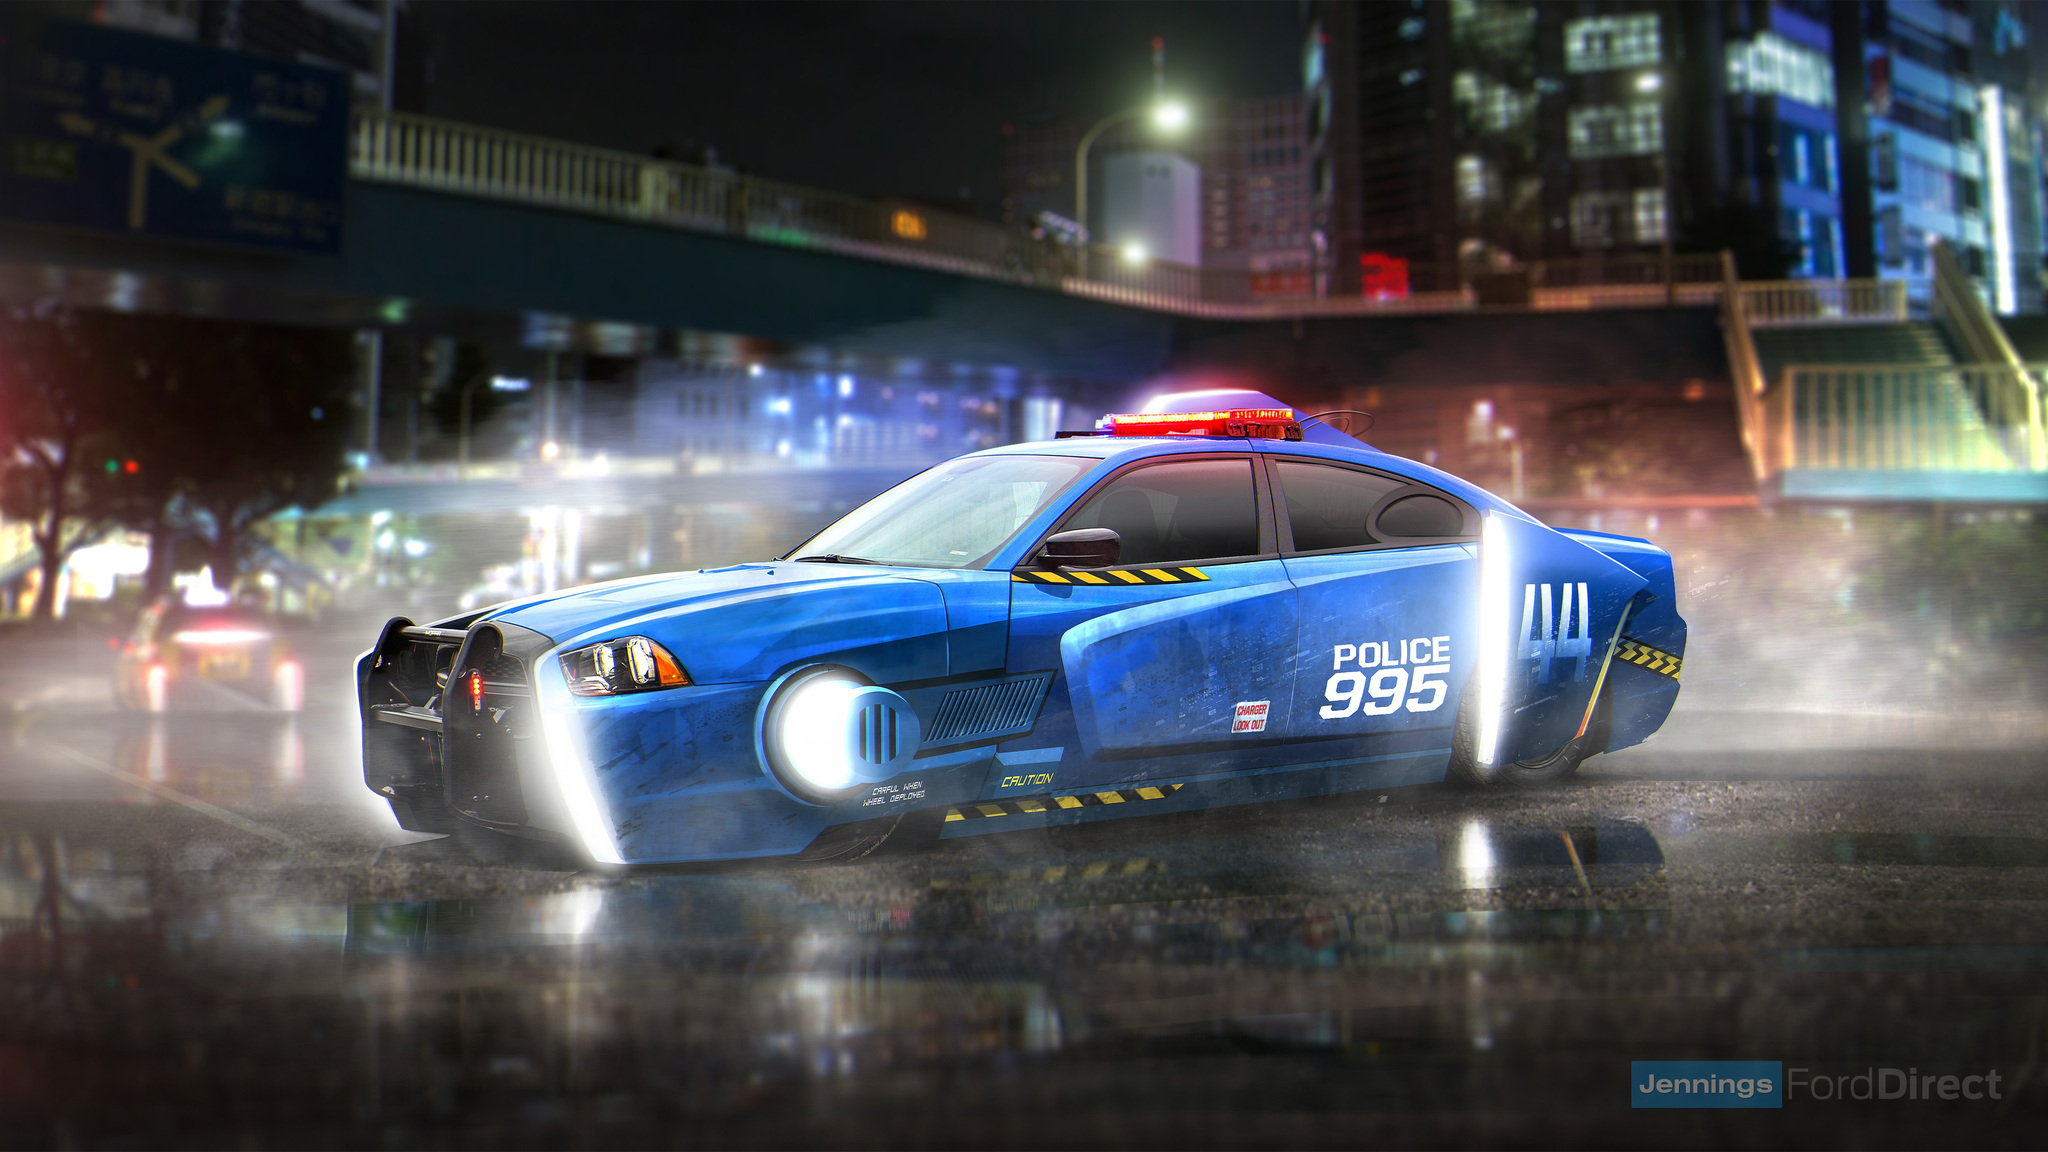 blade-runner-spinner-dodge-charger-police-car-21.